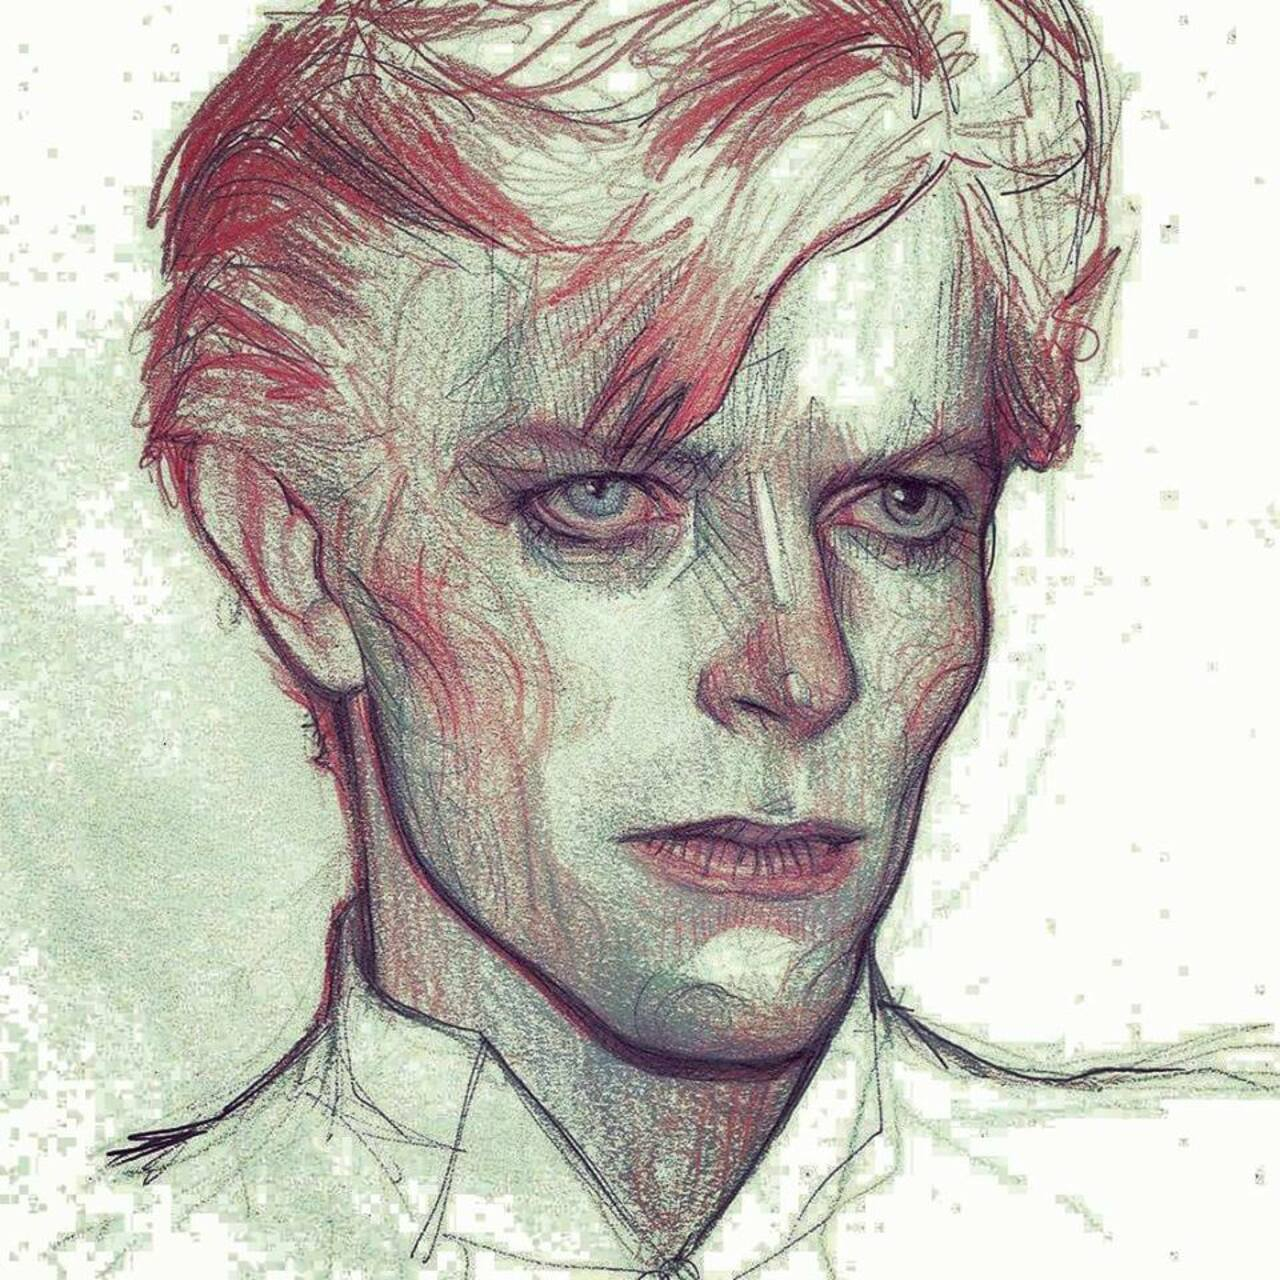 The Man Who Fell To Earth #DavidBowie #art #sketching by @subversivegirl https://t.co/GhV88PTCHT